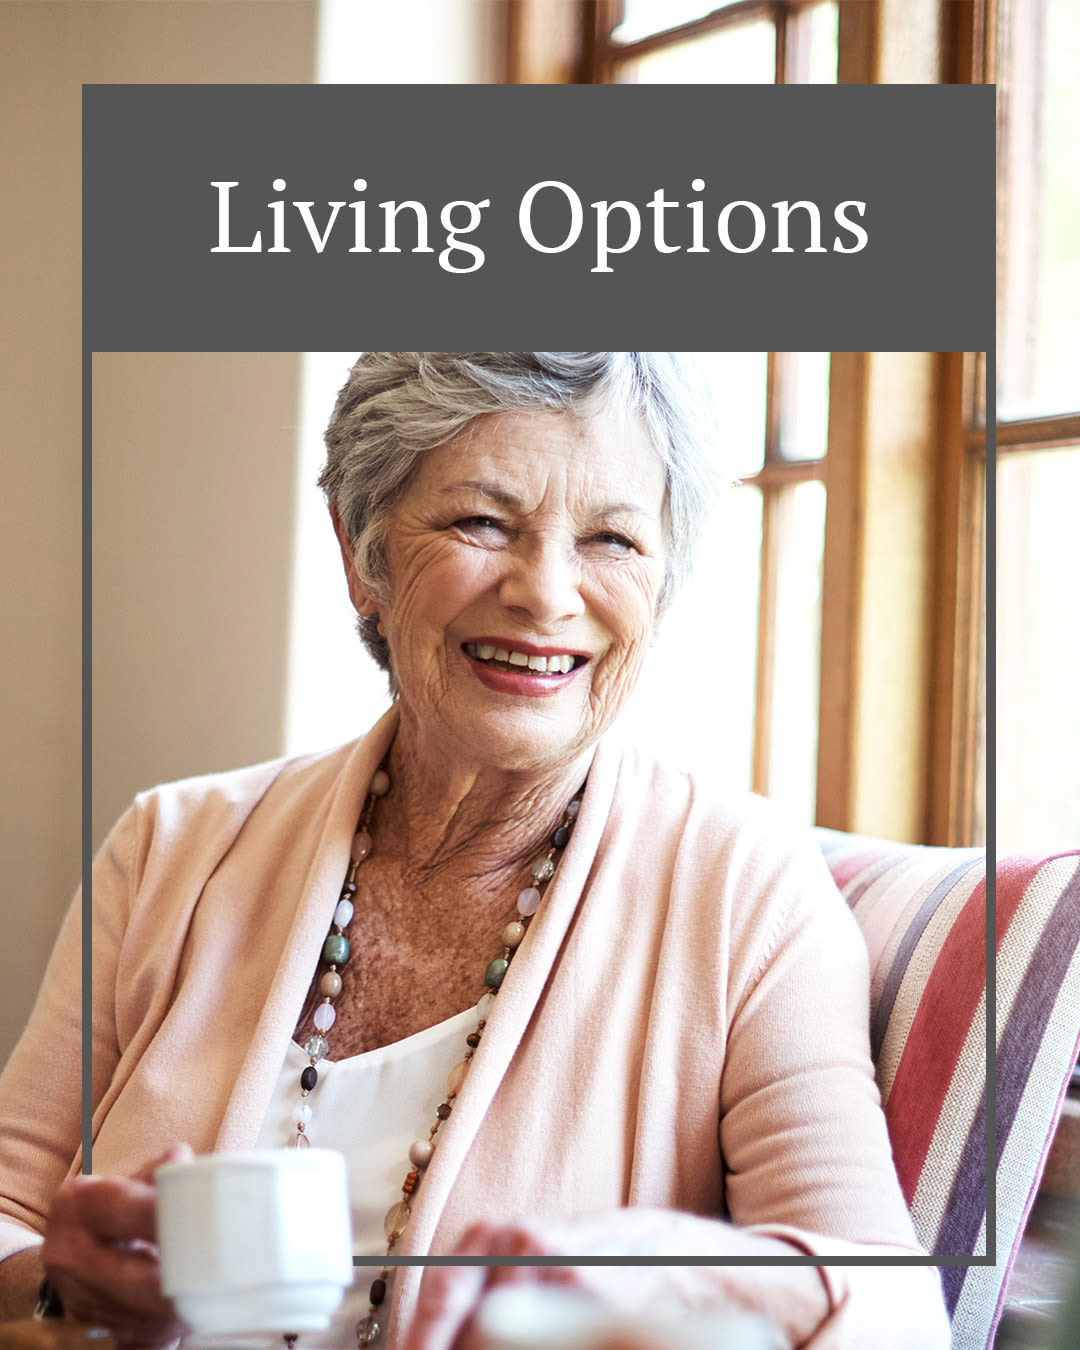 Living options at Autumn Grove Cottage at The Heights in Houston, Texas